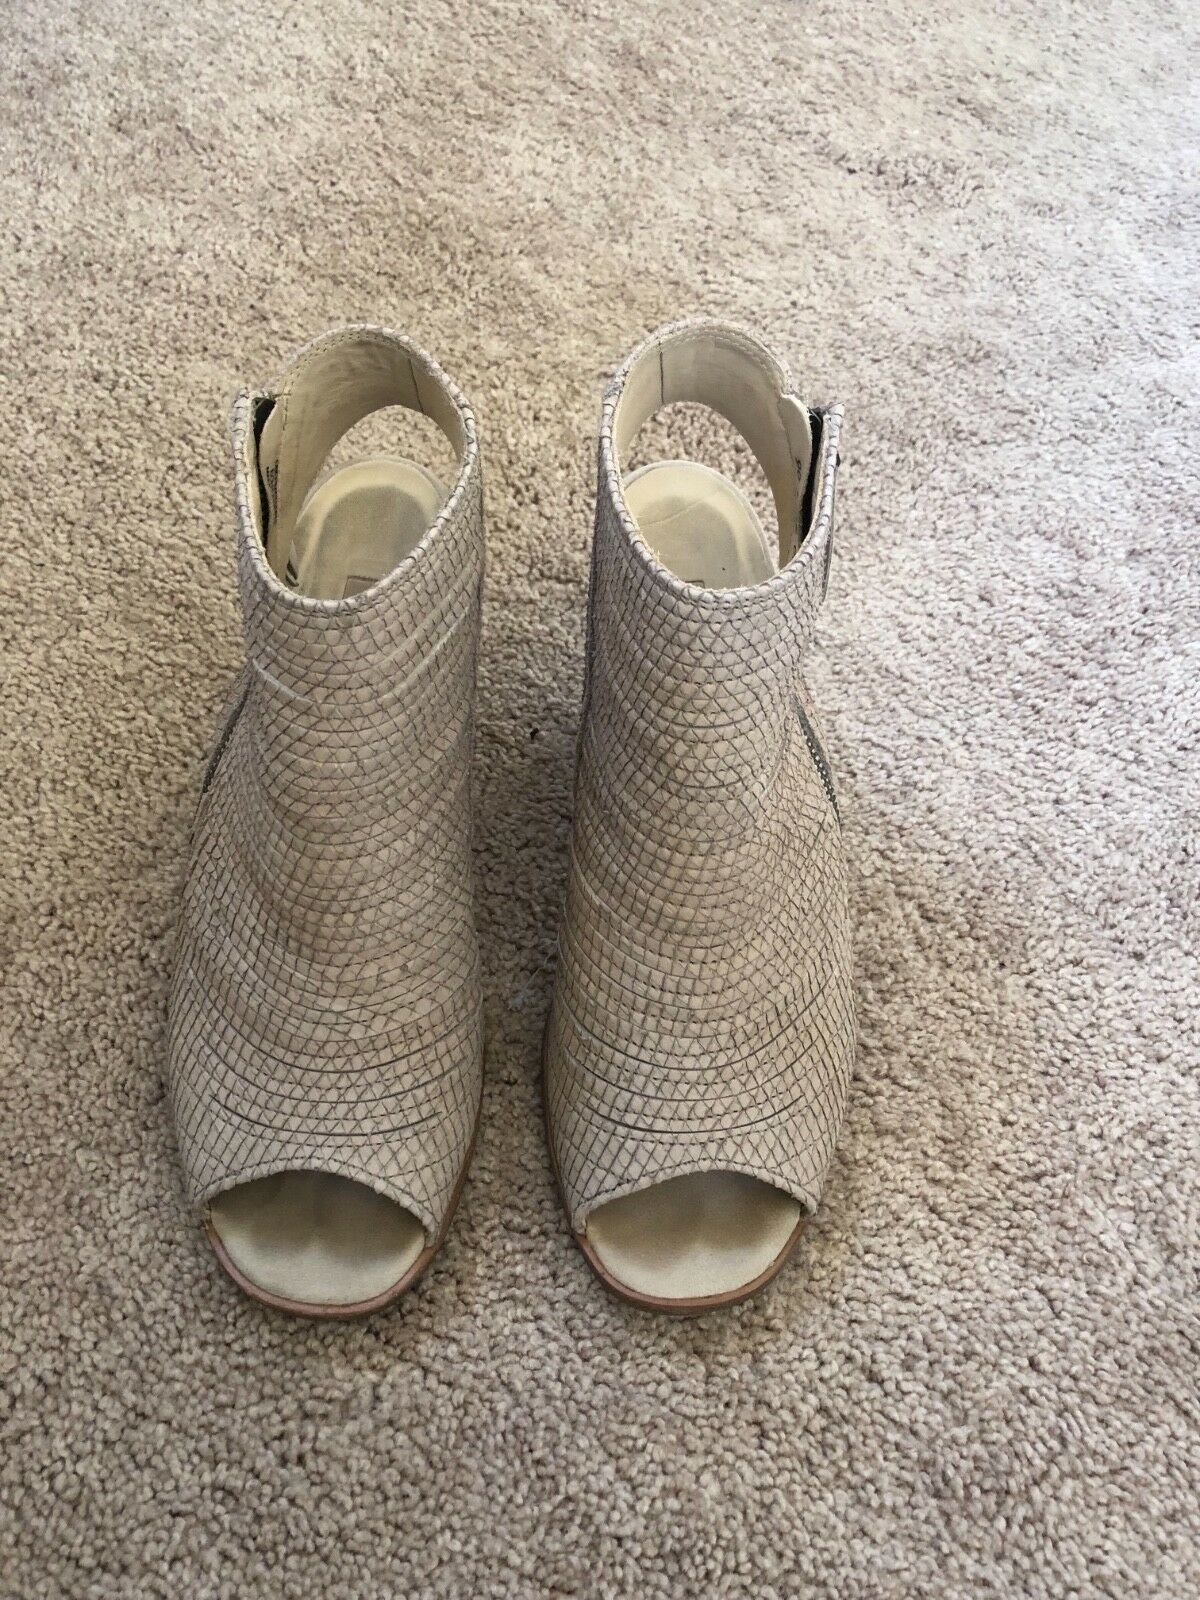 PAUL GREEN OPEN TOE HIGH-HEEL BOOTIES IN SIZE 10